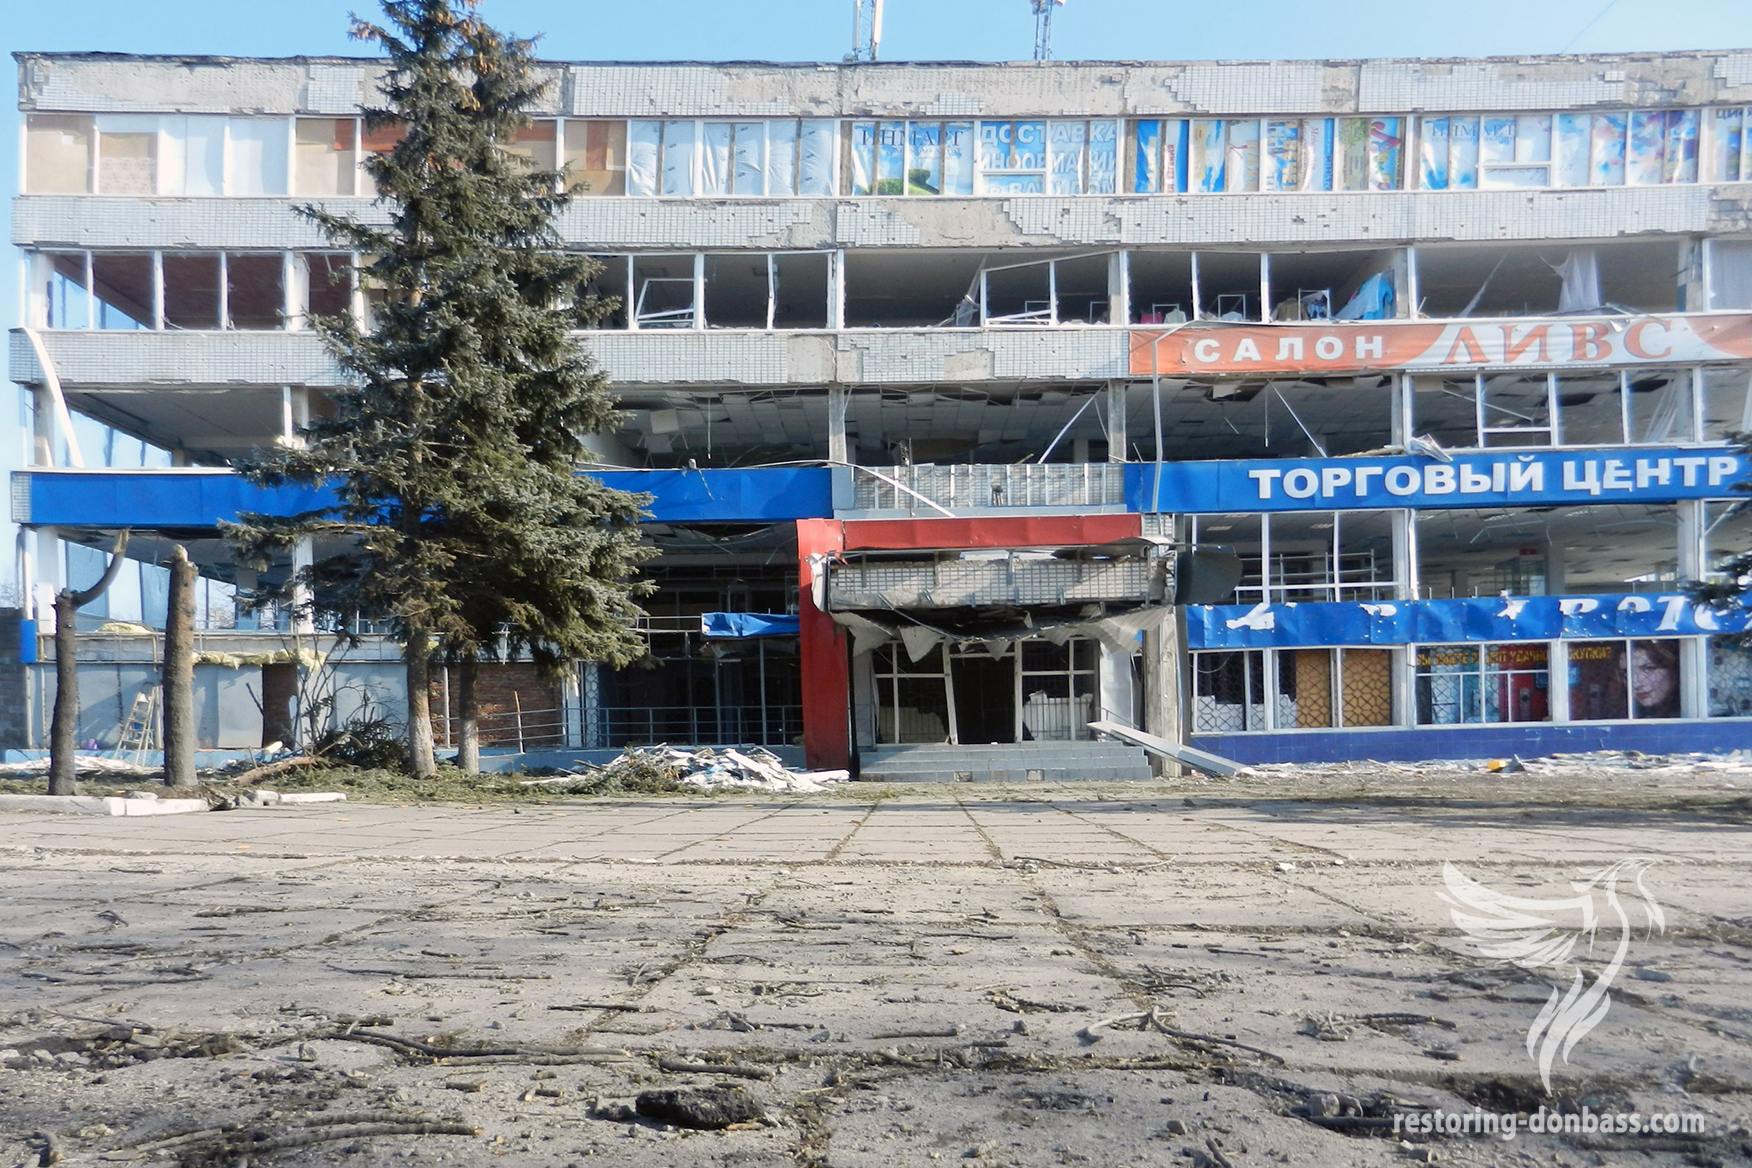 "Shopping center ""Noviy veter"", which was destroyed by shelling, in Gorlovka, May 27, 2015"